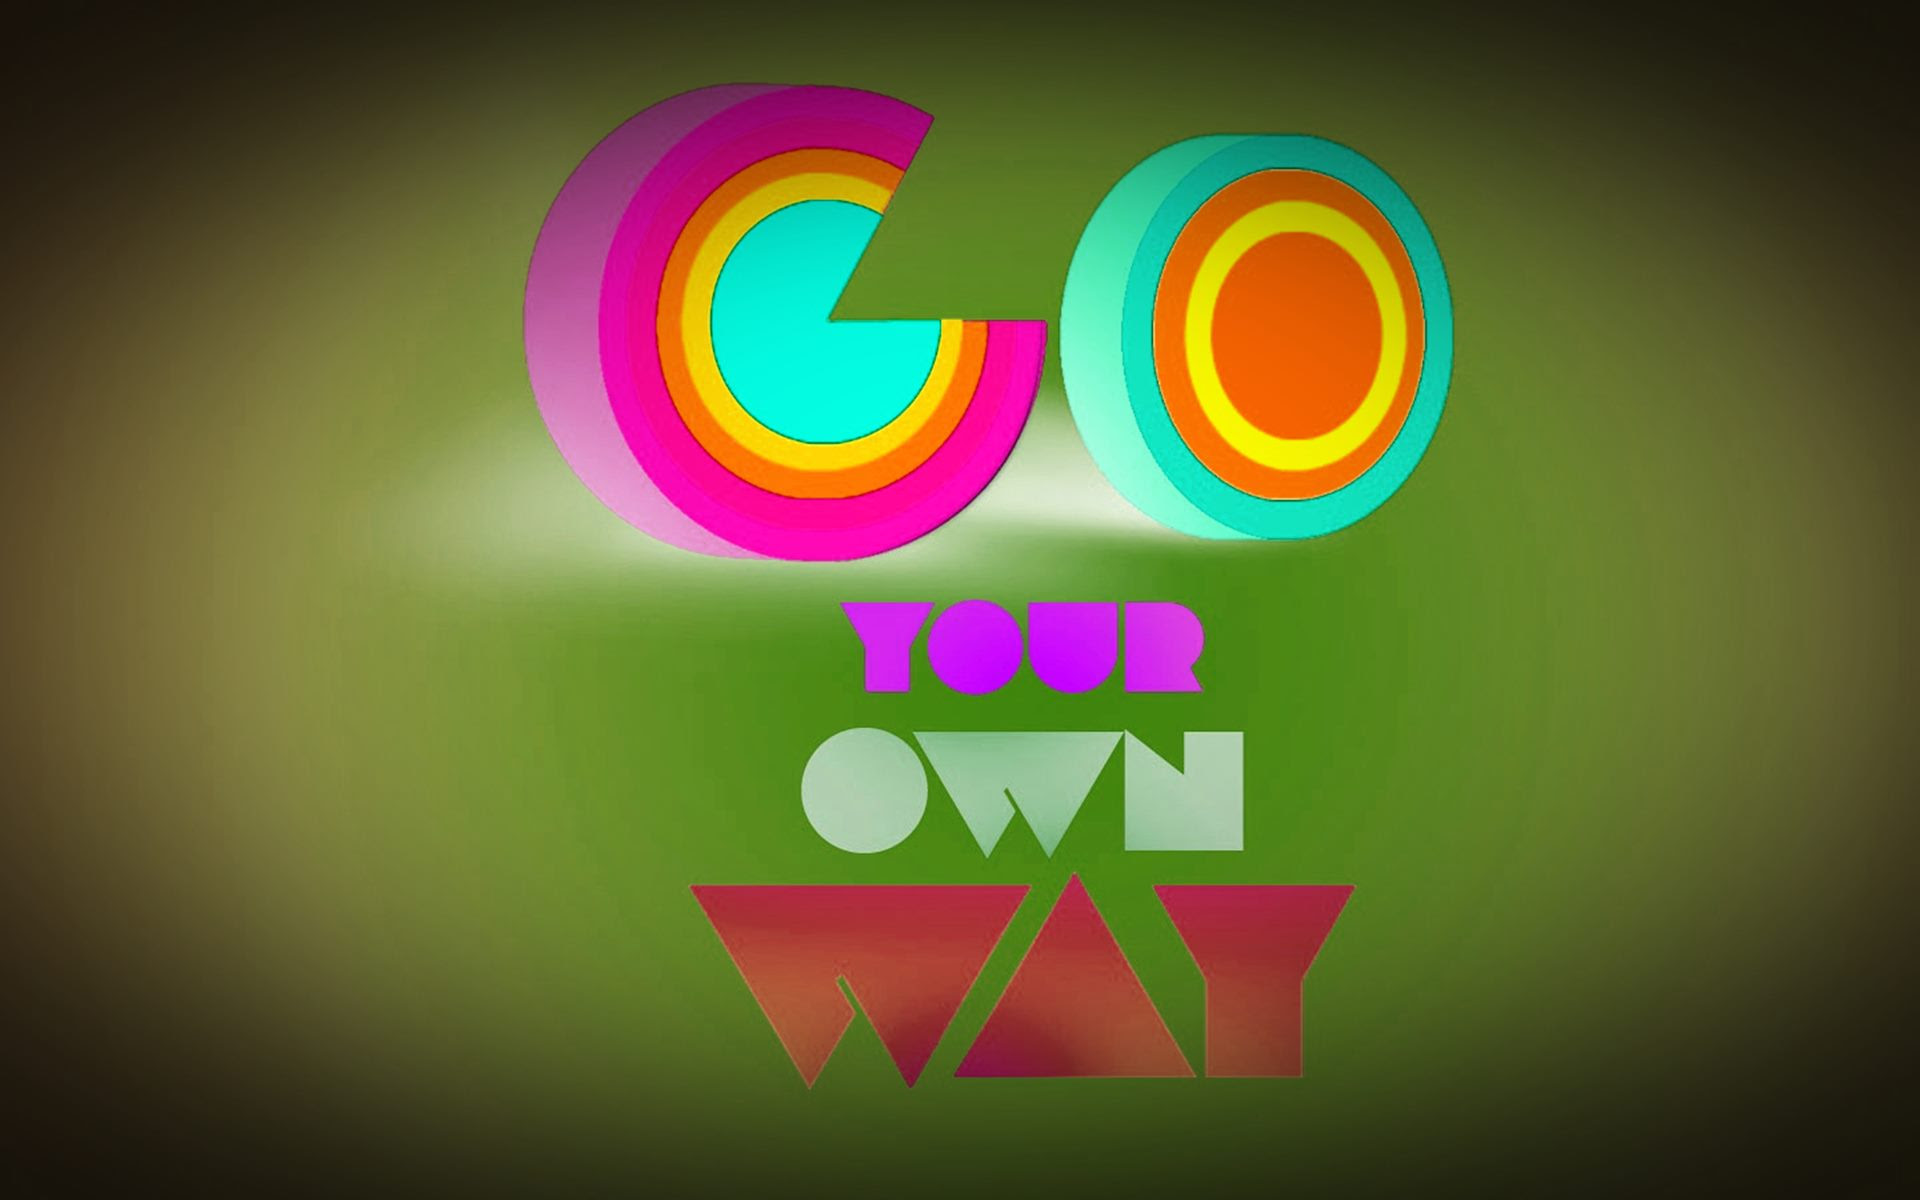 Go Your Own Way Attitude Quotes Hd Wallpaper 05489